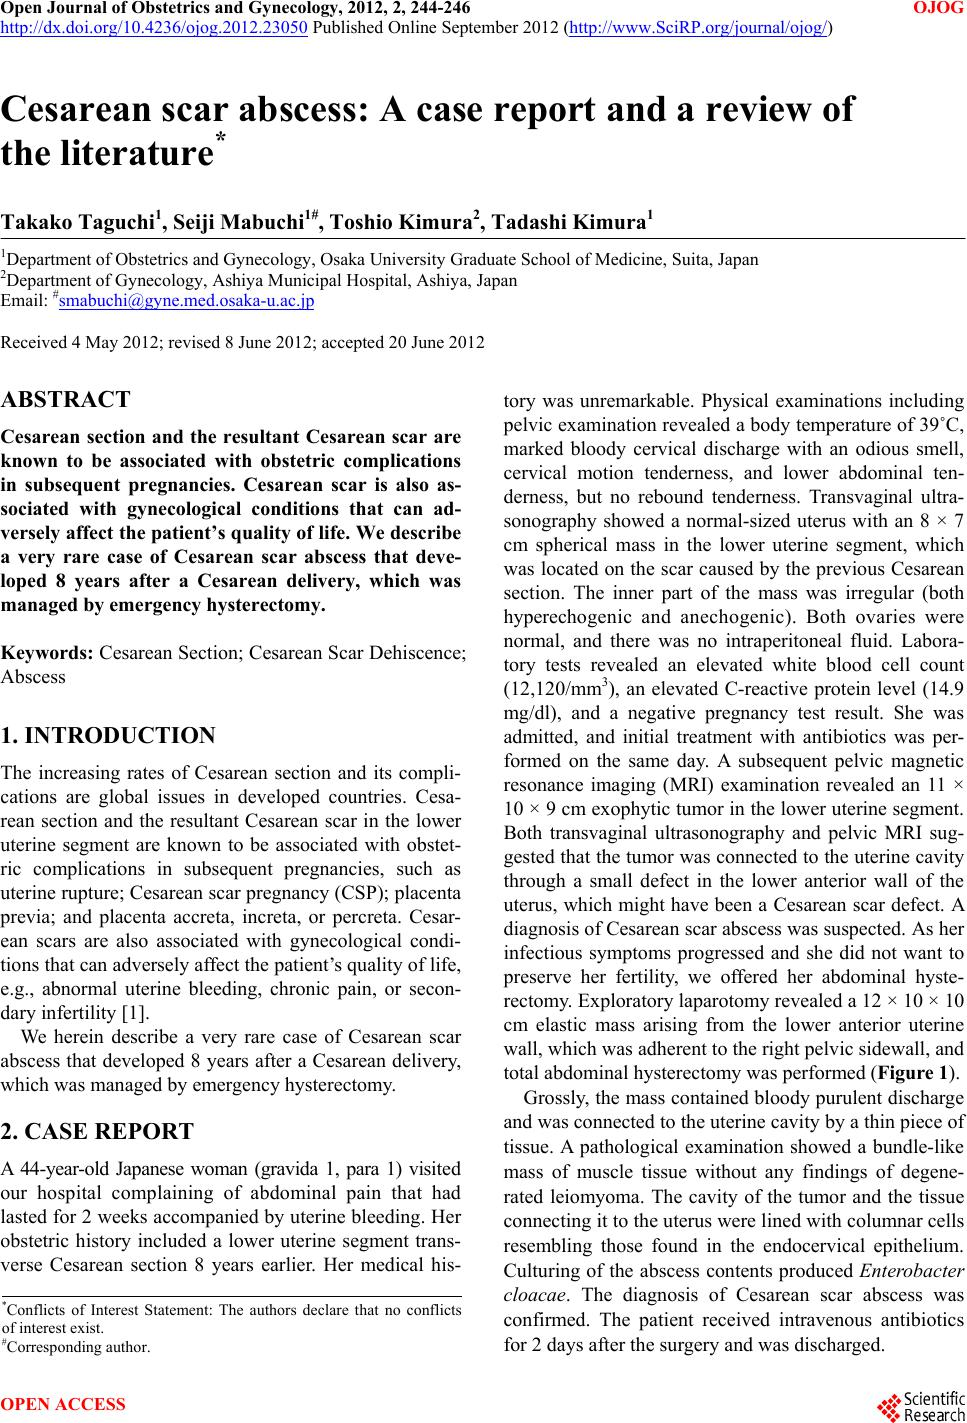 Cesarean scar abscess: A case report and a review of the ...